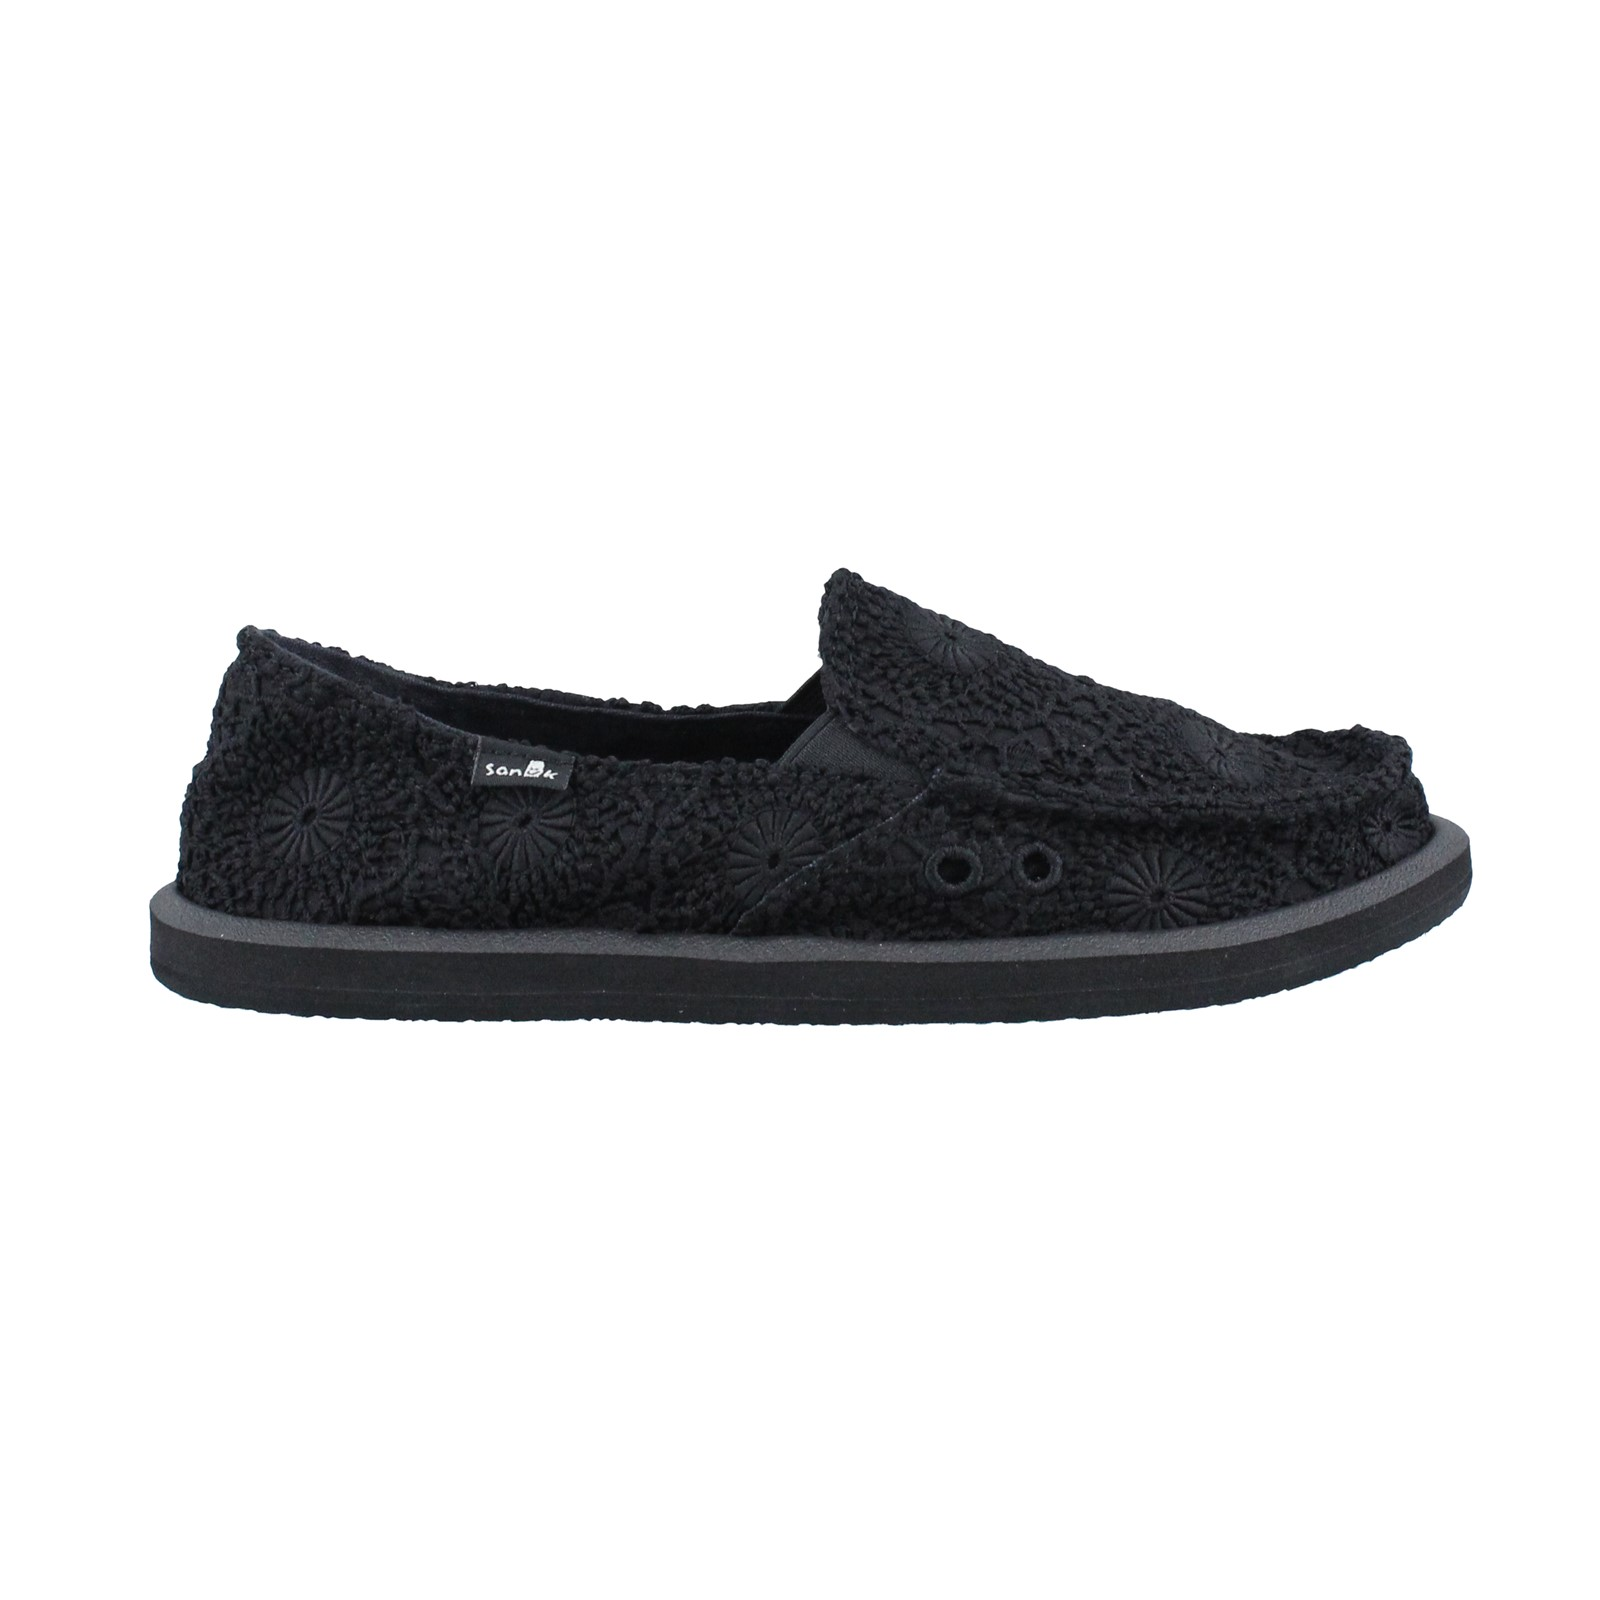 Women's Sanuk, Donna Crochet Slip on Shoe